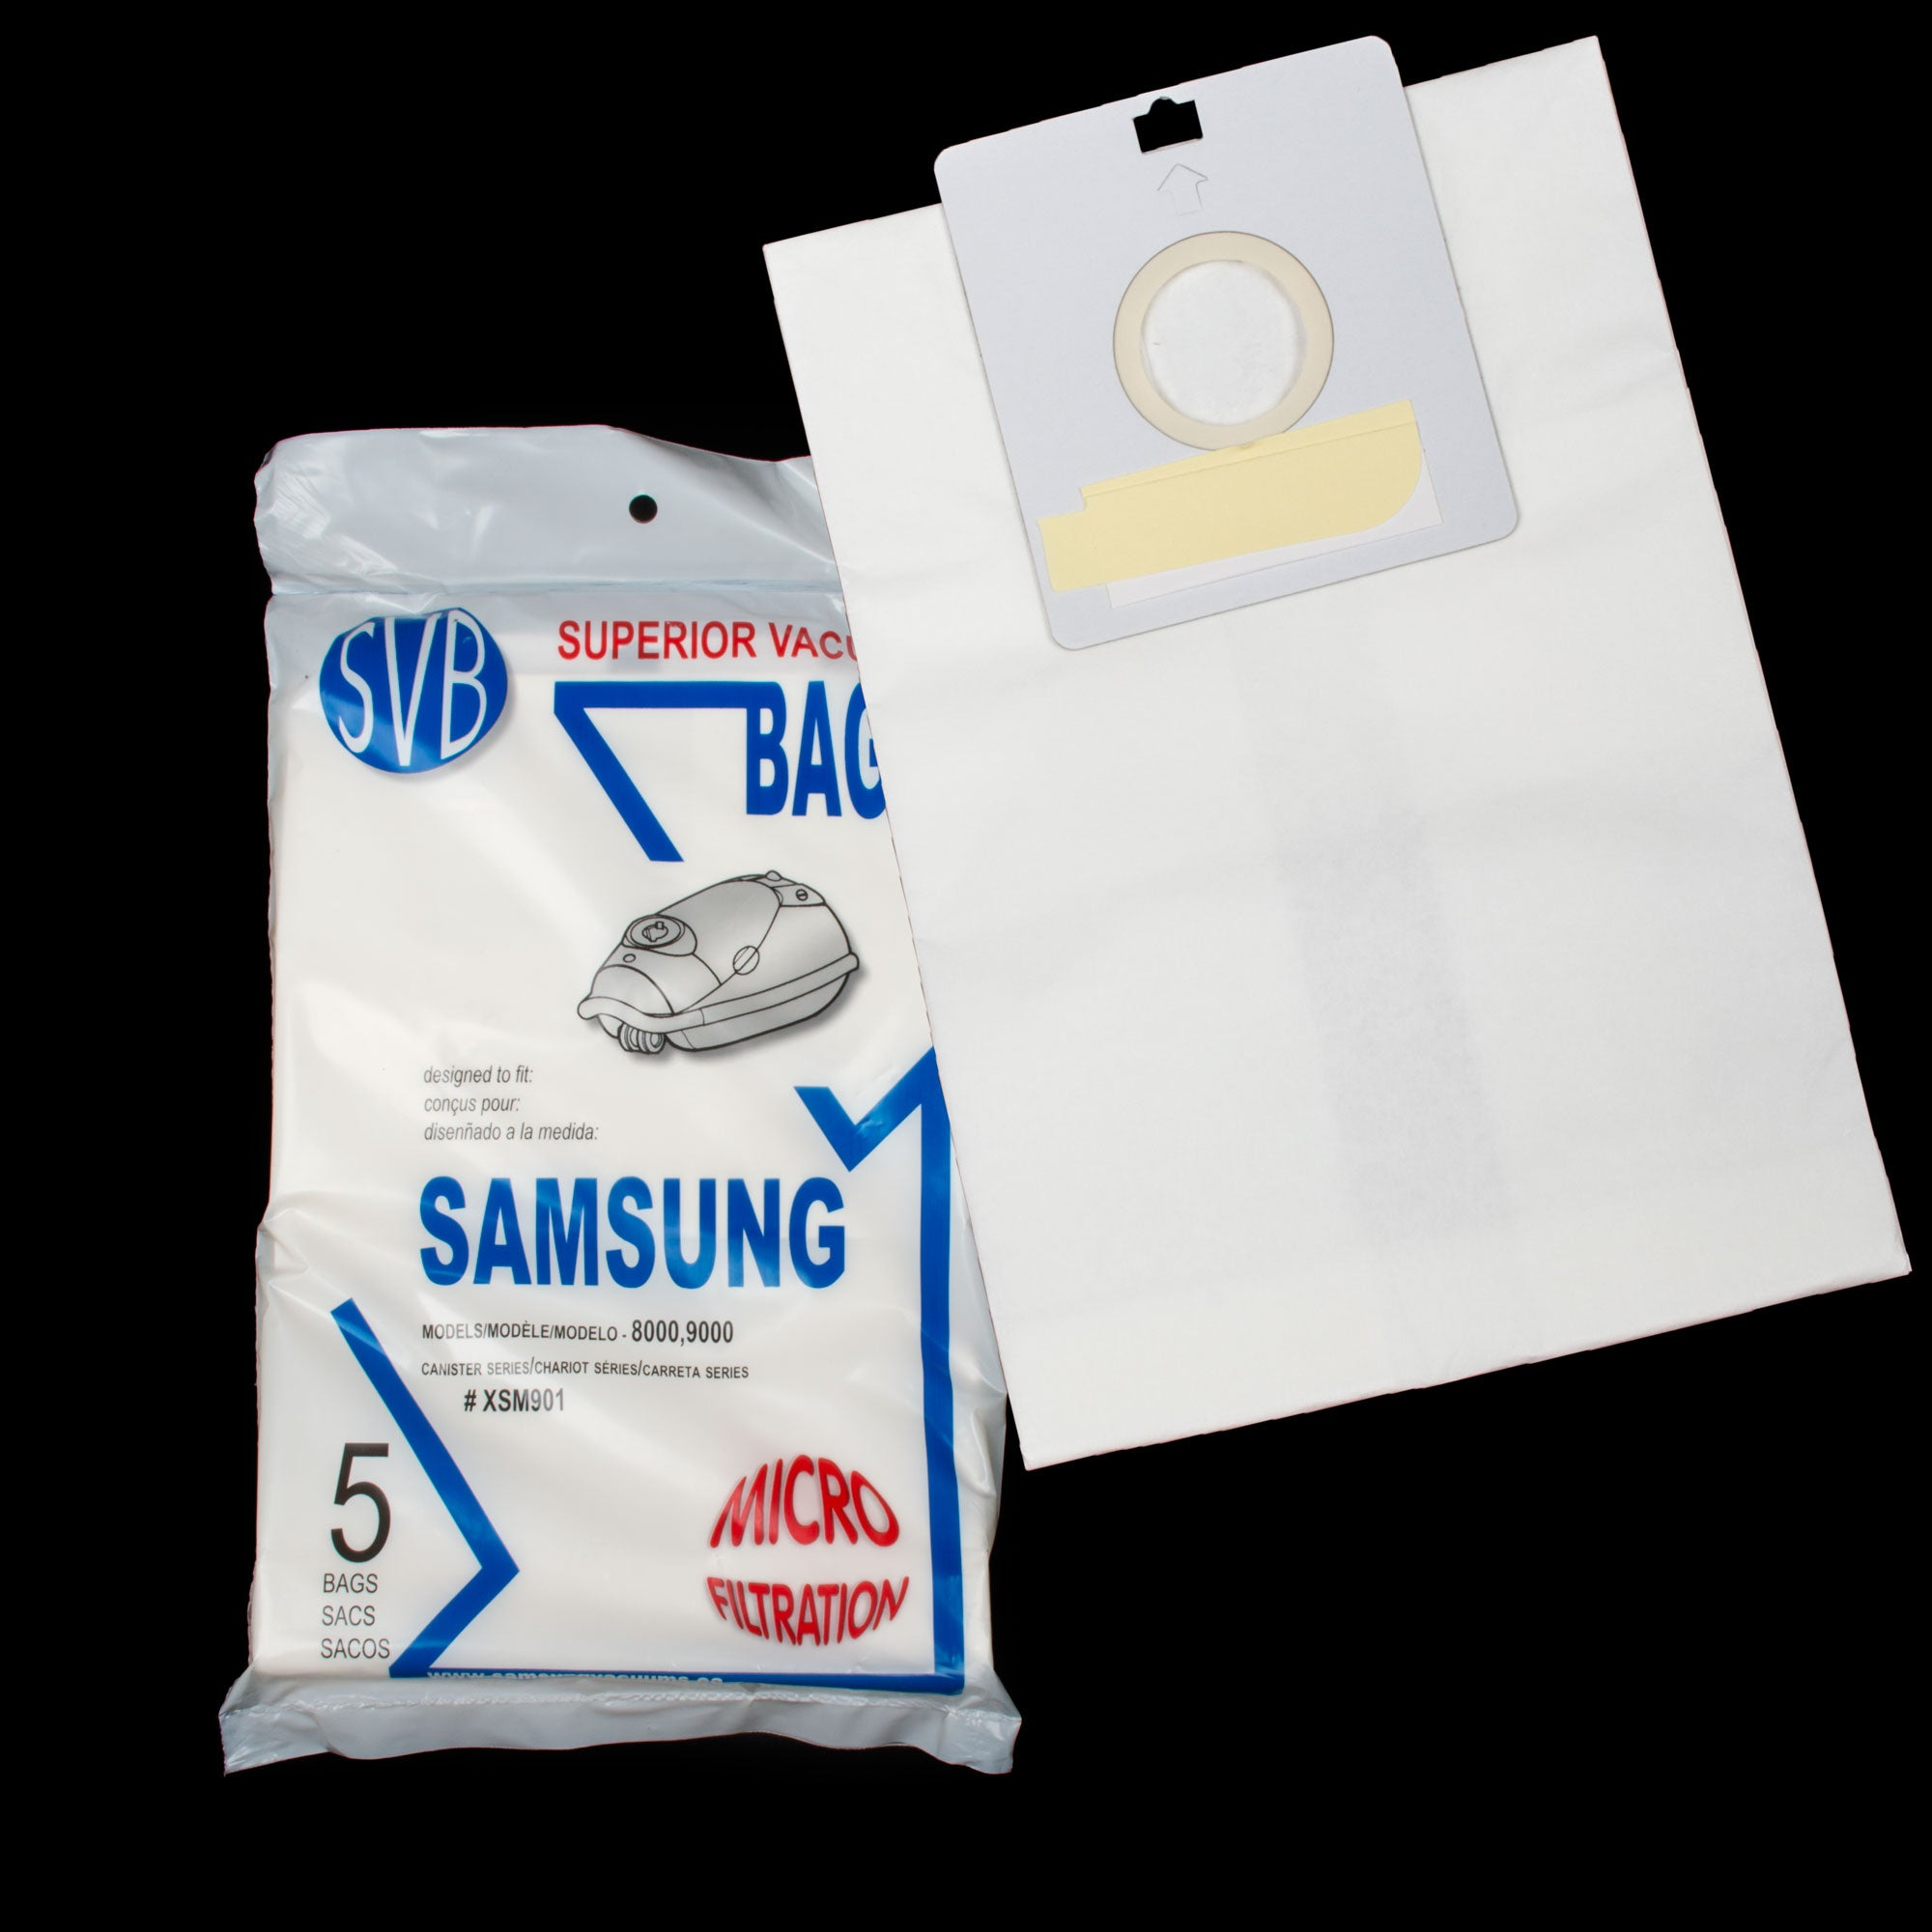 XSM901 SAMSUNG PAPER BAG 8000 7910 9000 CANISTER 5 PACK BISSELL MODEL USING BAG VP90 6900C 8913 DIGIMAX FITS SINGER CANISTER BPC-6, TURN BAG SIDEWAYS